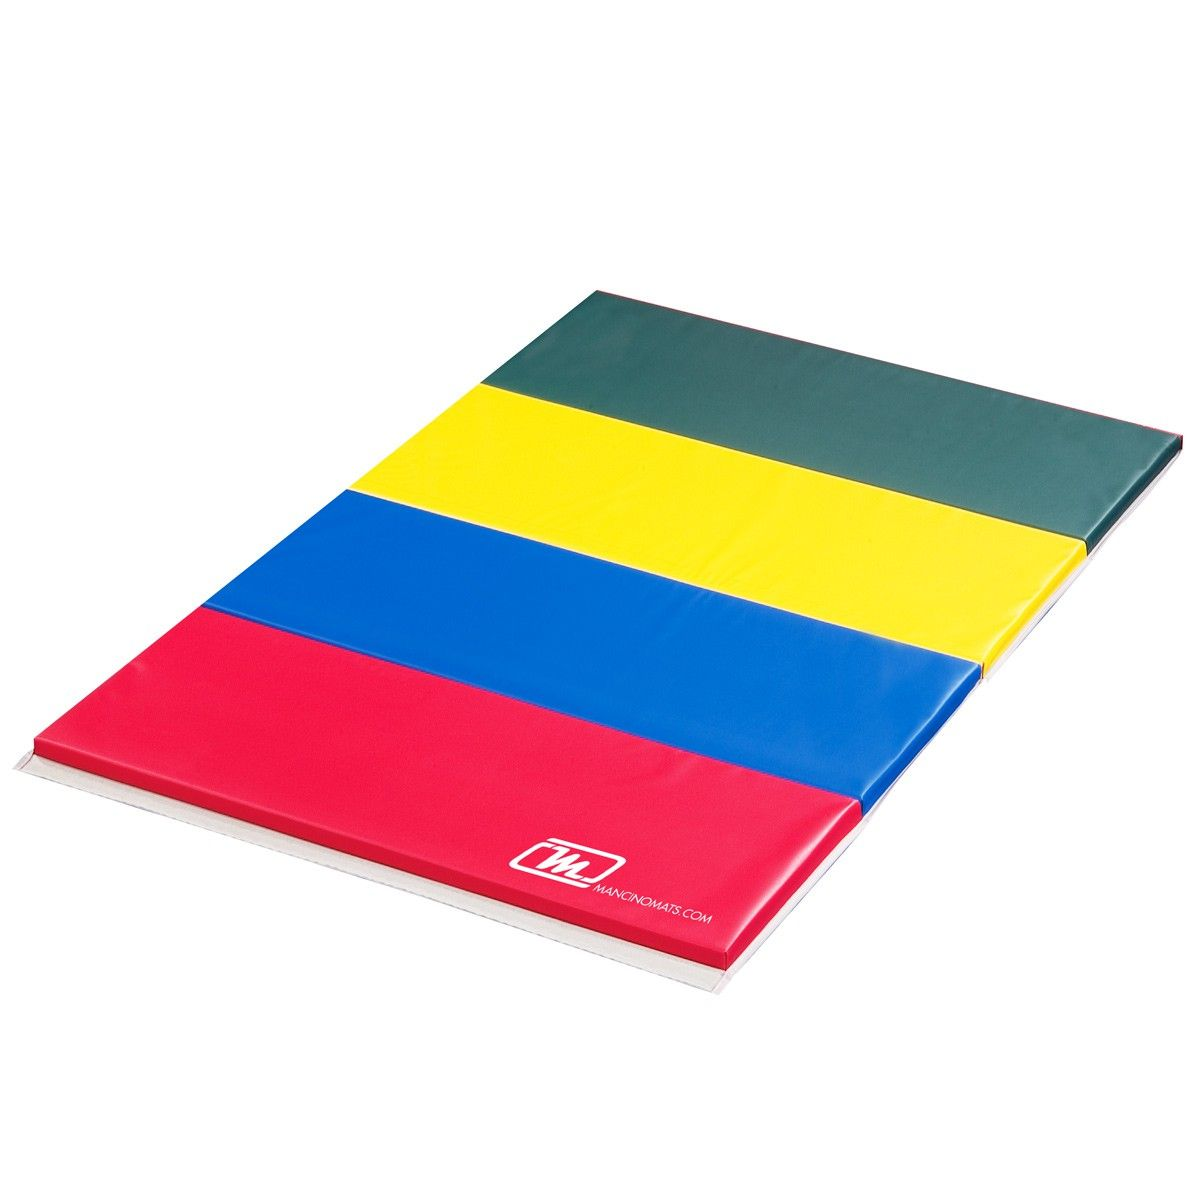 mat panel mats gymnastics and with sides design folding cheerleading tumbling arts x velcro martial fitness juperbsky thick